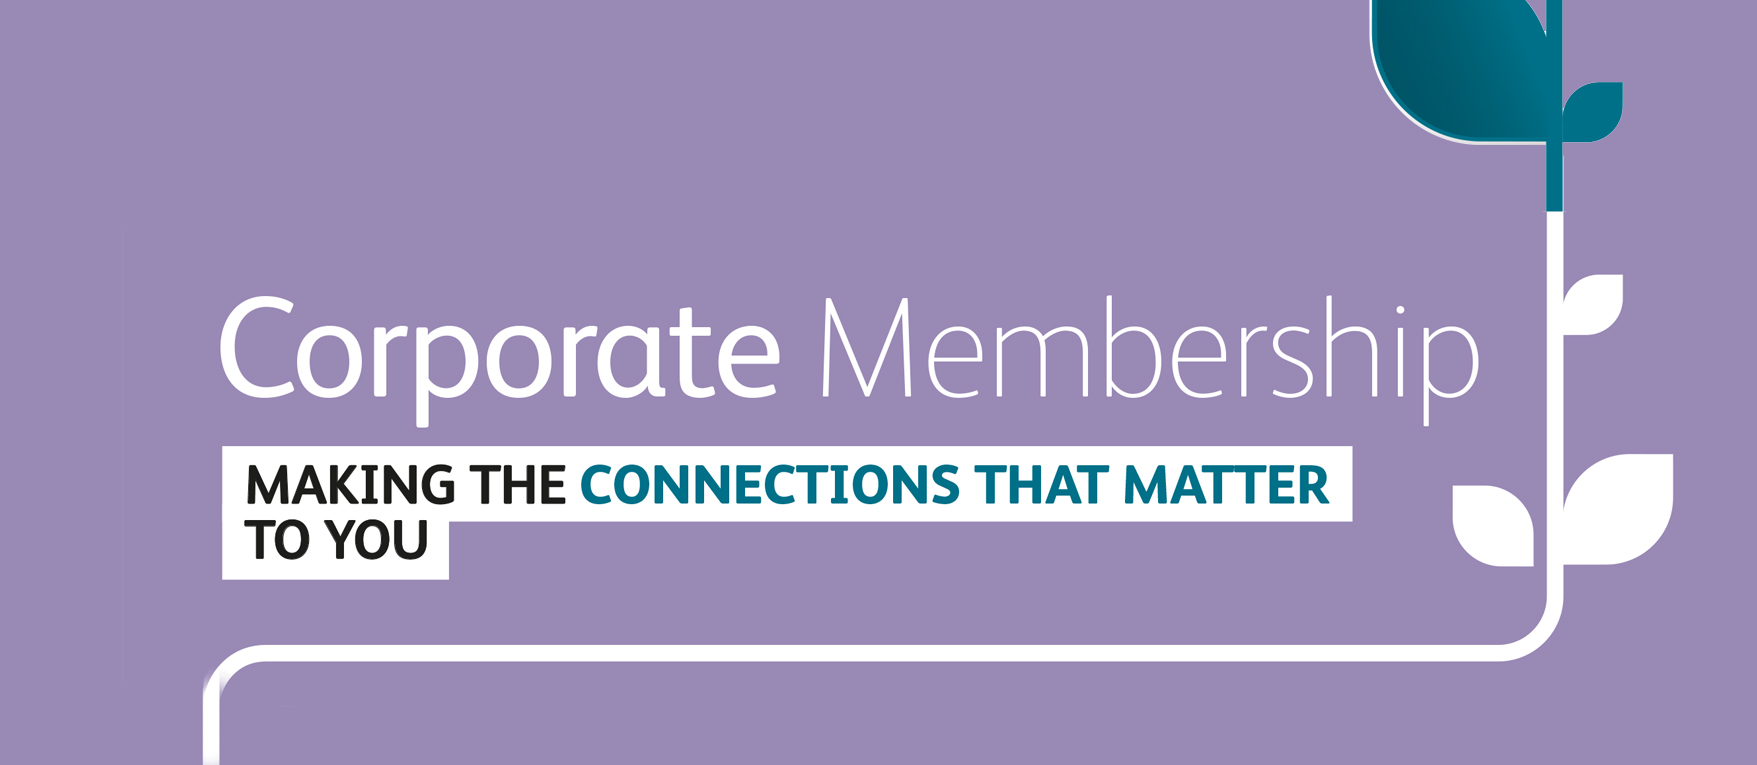 Image for Corporate Membership